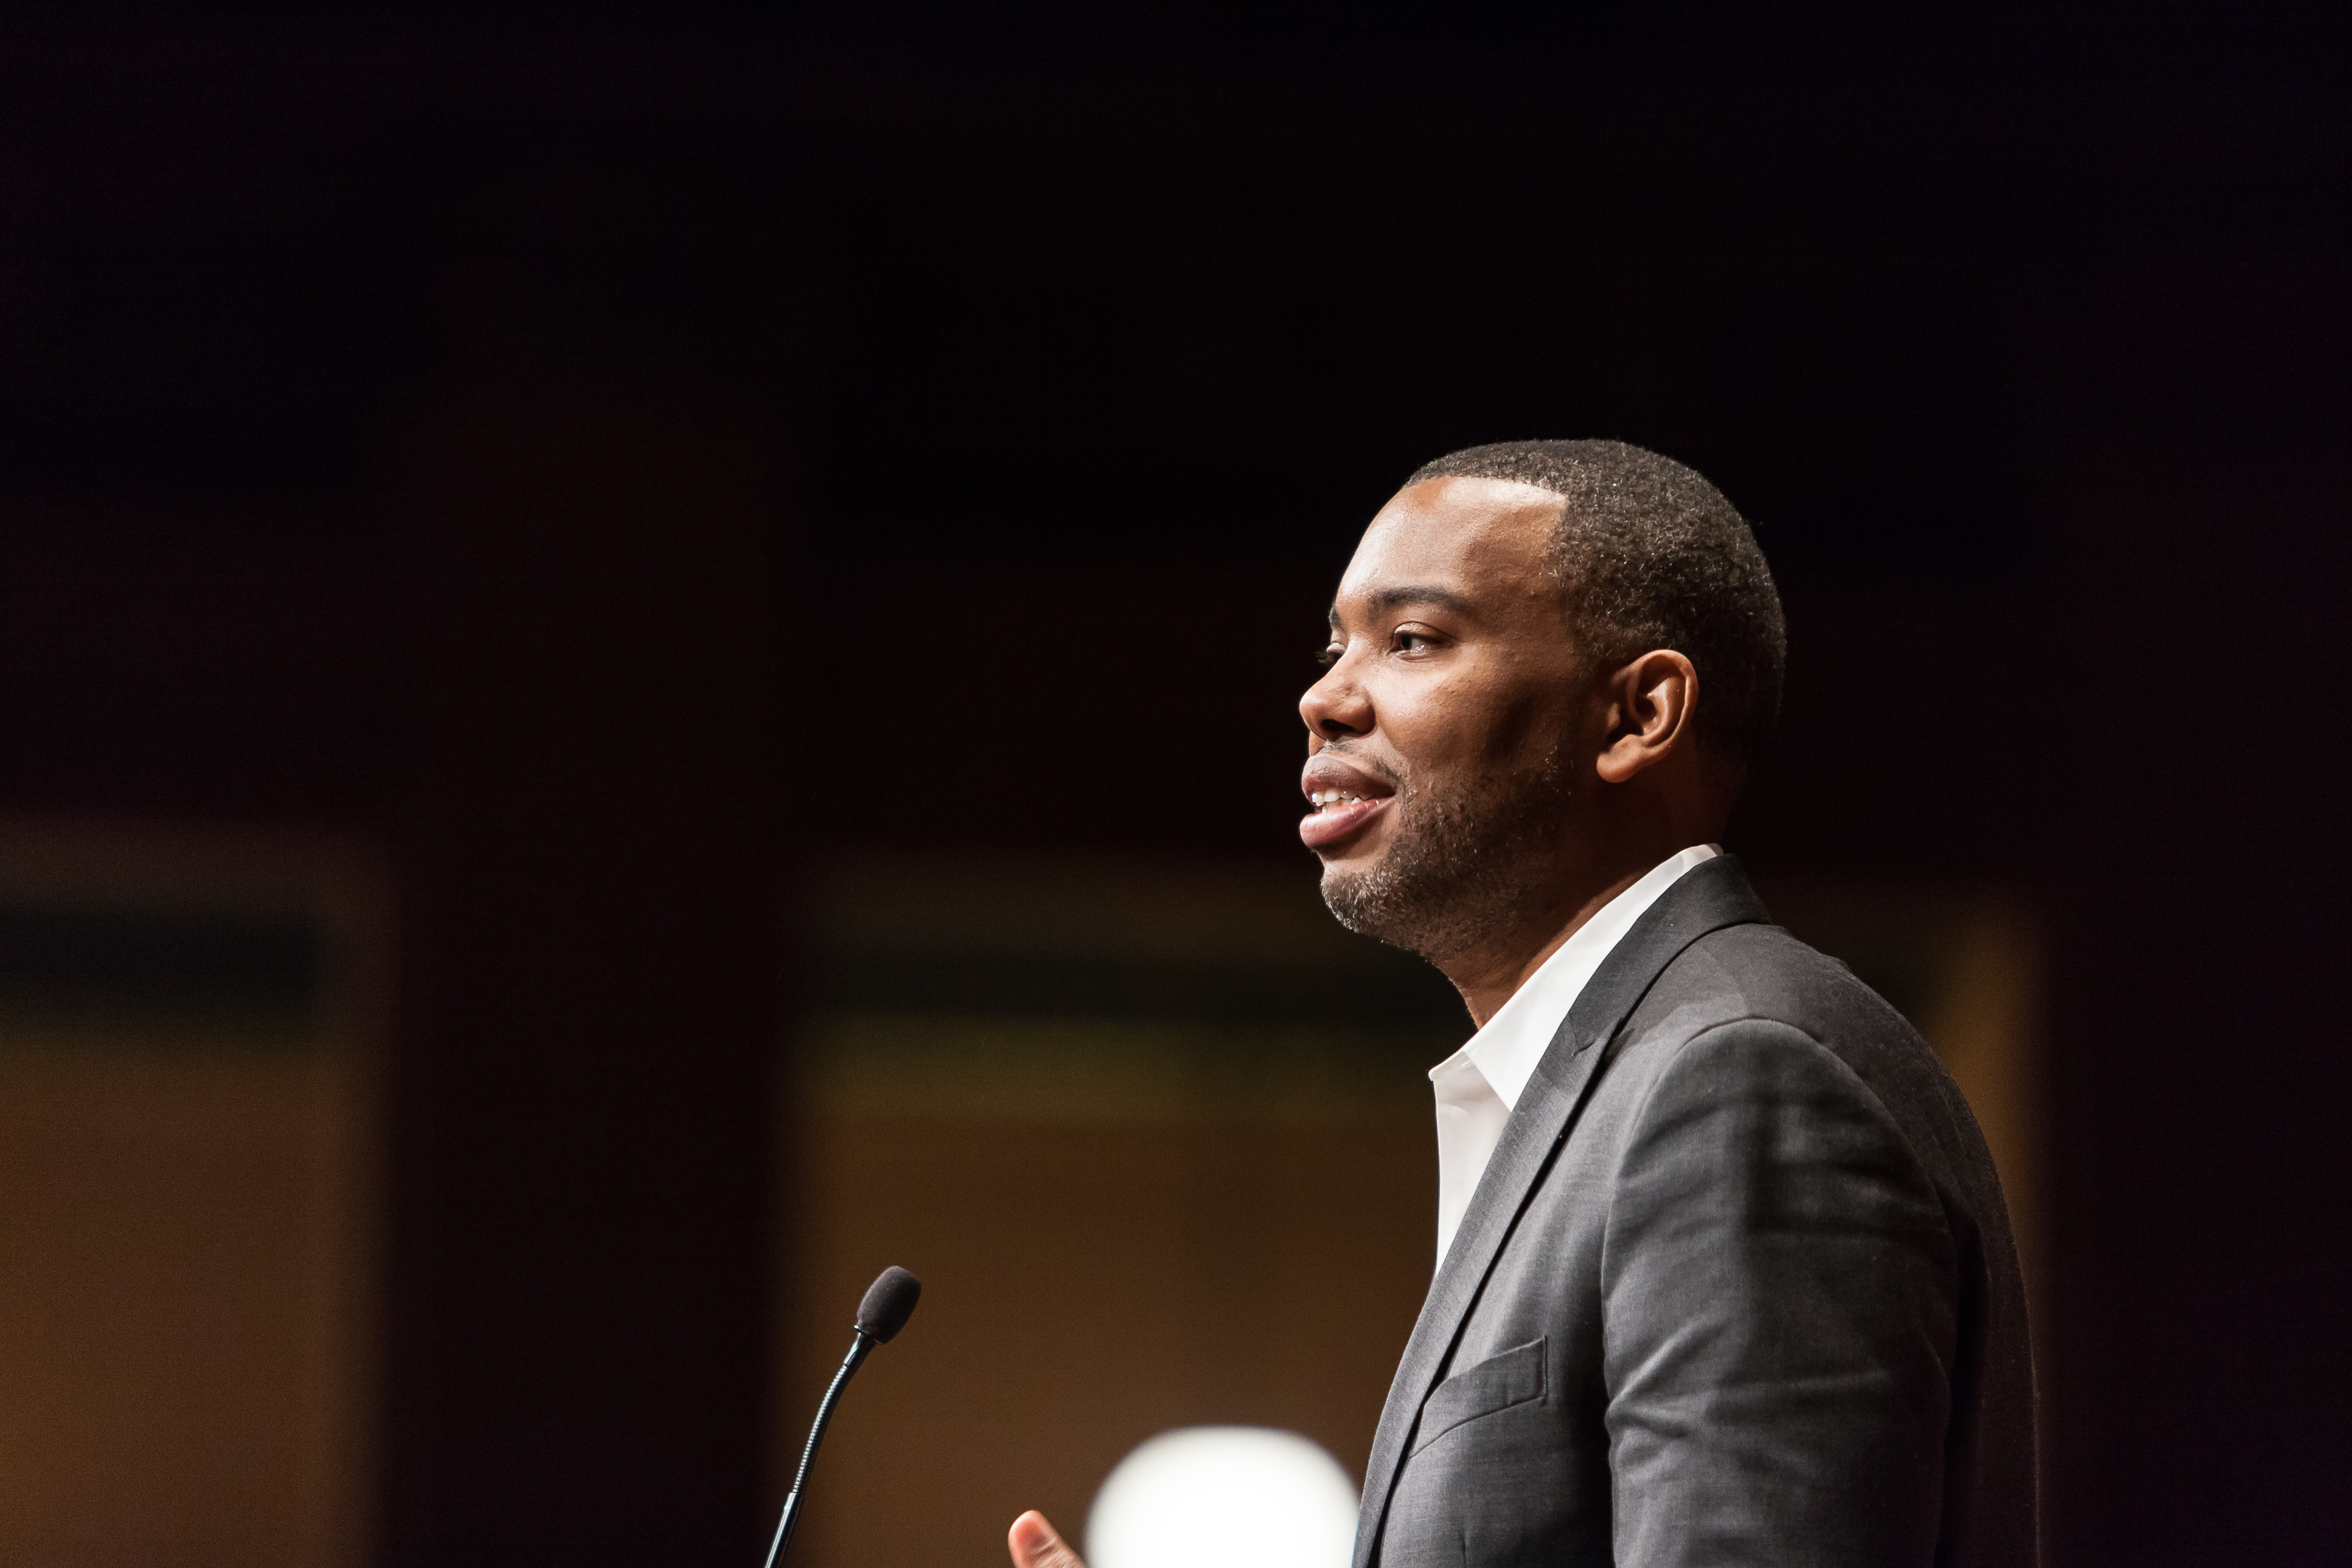 "Ta-Nehisi Coates delves into the conflicted and hopeful state of black America today. What does ""black culture"" mean? What is the continuing role of both the older and younger generations in shaping it? Where will gentrification, education, and the splintering (or unifying) of families take it? With an easy-going manner, an unashamedly erudite approach, and a journalist's grasp of narrative and clarity, Coates delivers an ear-to-the-ground (and Eyes on the Prize) talk that asks the small personal questions as well as the big historic ones. Presented on January 21, 2015 by the Institute for Research on Women & Gender and the Women's Studies Department, with cosponsorship from the Department of Afroamerican and African Studies, the Gerald R. Ford School of Public Policy, and the Office of the Vice Provost for Equity, Inclusion, and Academic Affairs, the biennial Motorola Lecture features an outstanding journalist who routinely addresses issues concerning gender in his or her reporting. Photo credit: Sean Carter Photography Details: http://fordschool.umich.edu/events/2015/deeper-black-race-america CC BY-ND 2.0 (https://creativecommons.org/licenses/by-nd/2.0/), via Flickr"